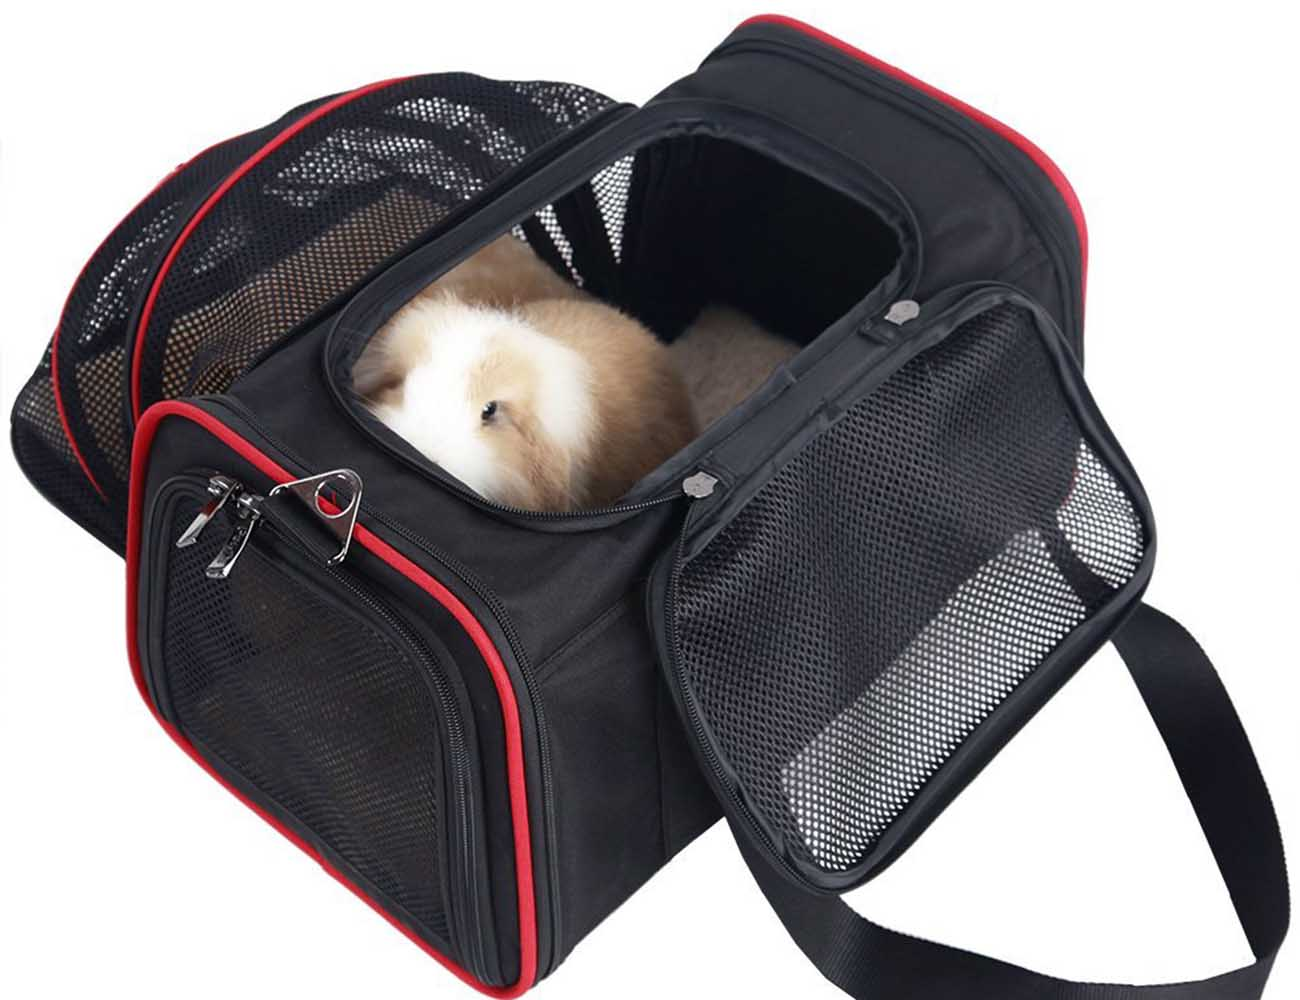 Expandable+Dog+Carrier+By+Petsfit